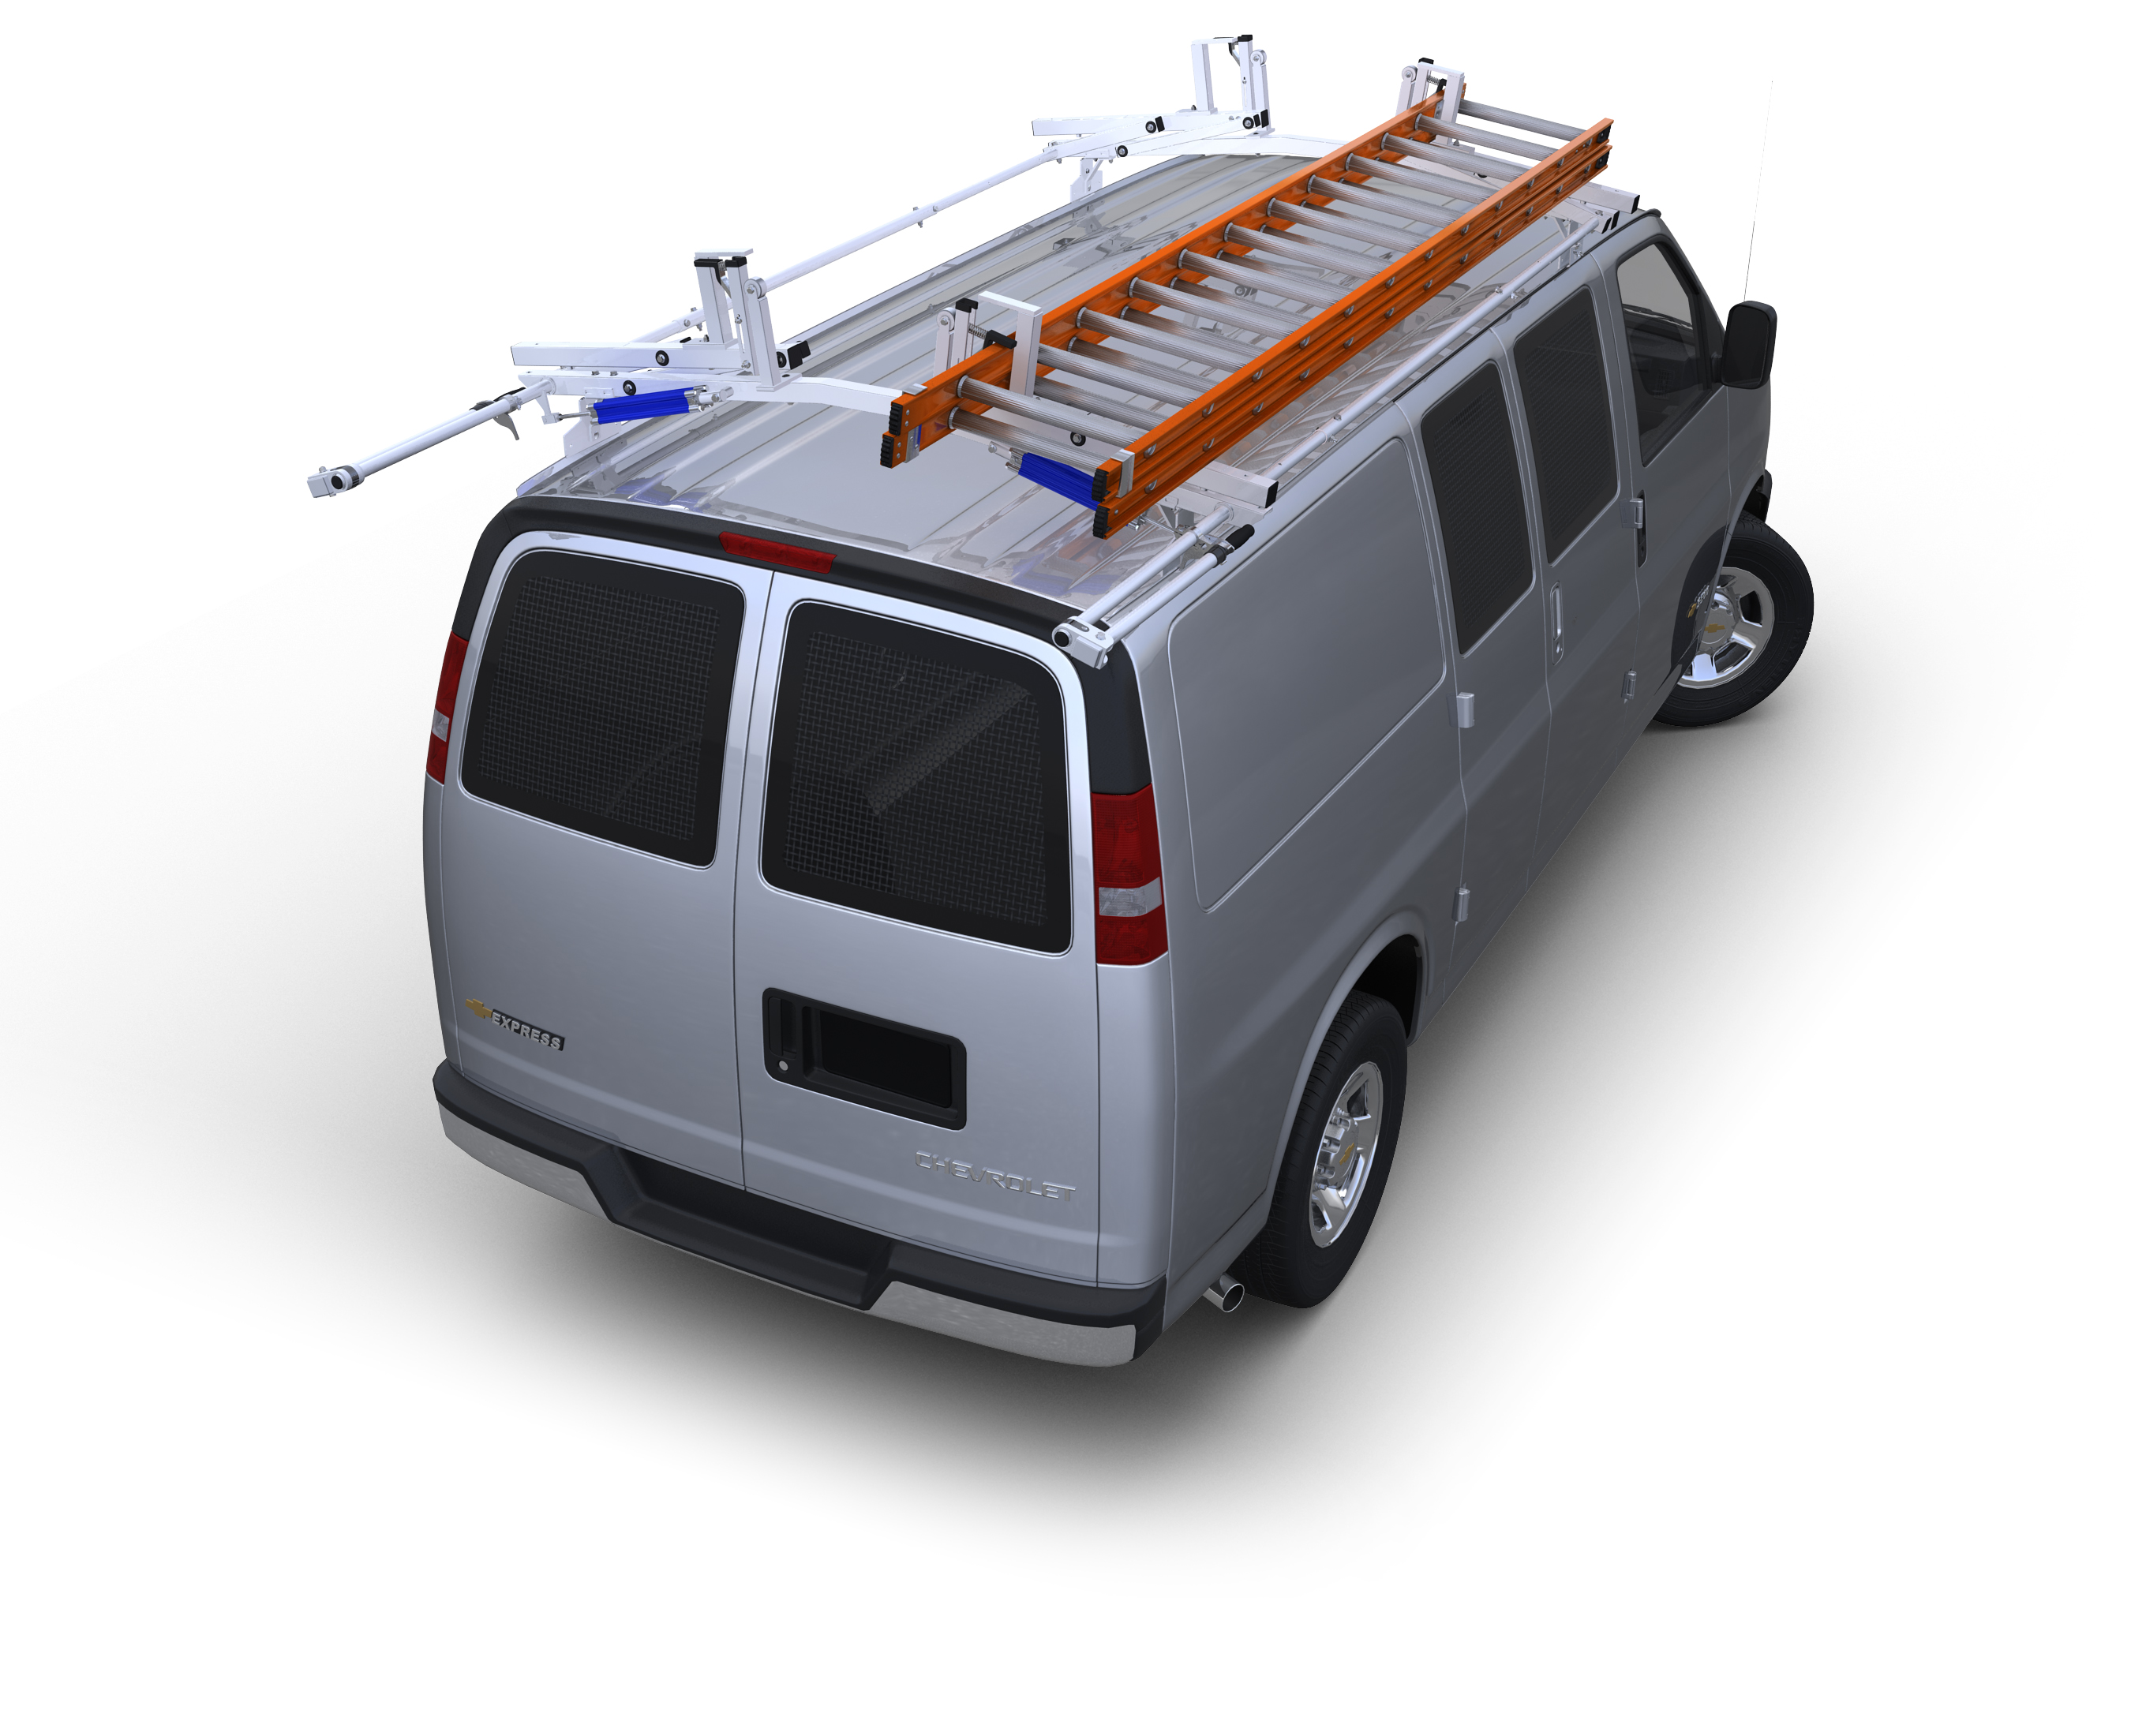 The Ultimate Aluminum Ladder Rack for the Nissan NV - Three Cross Supports